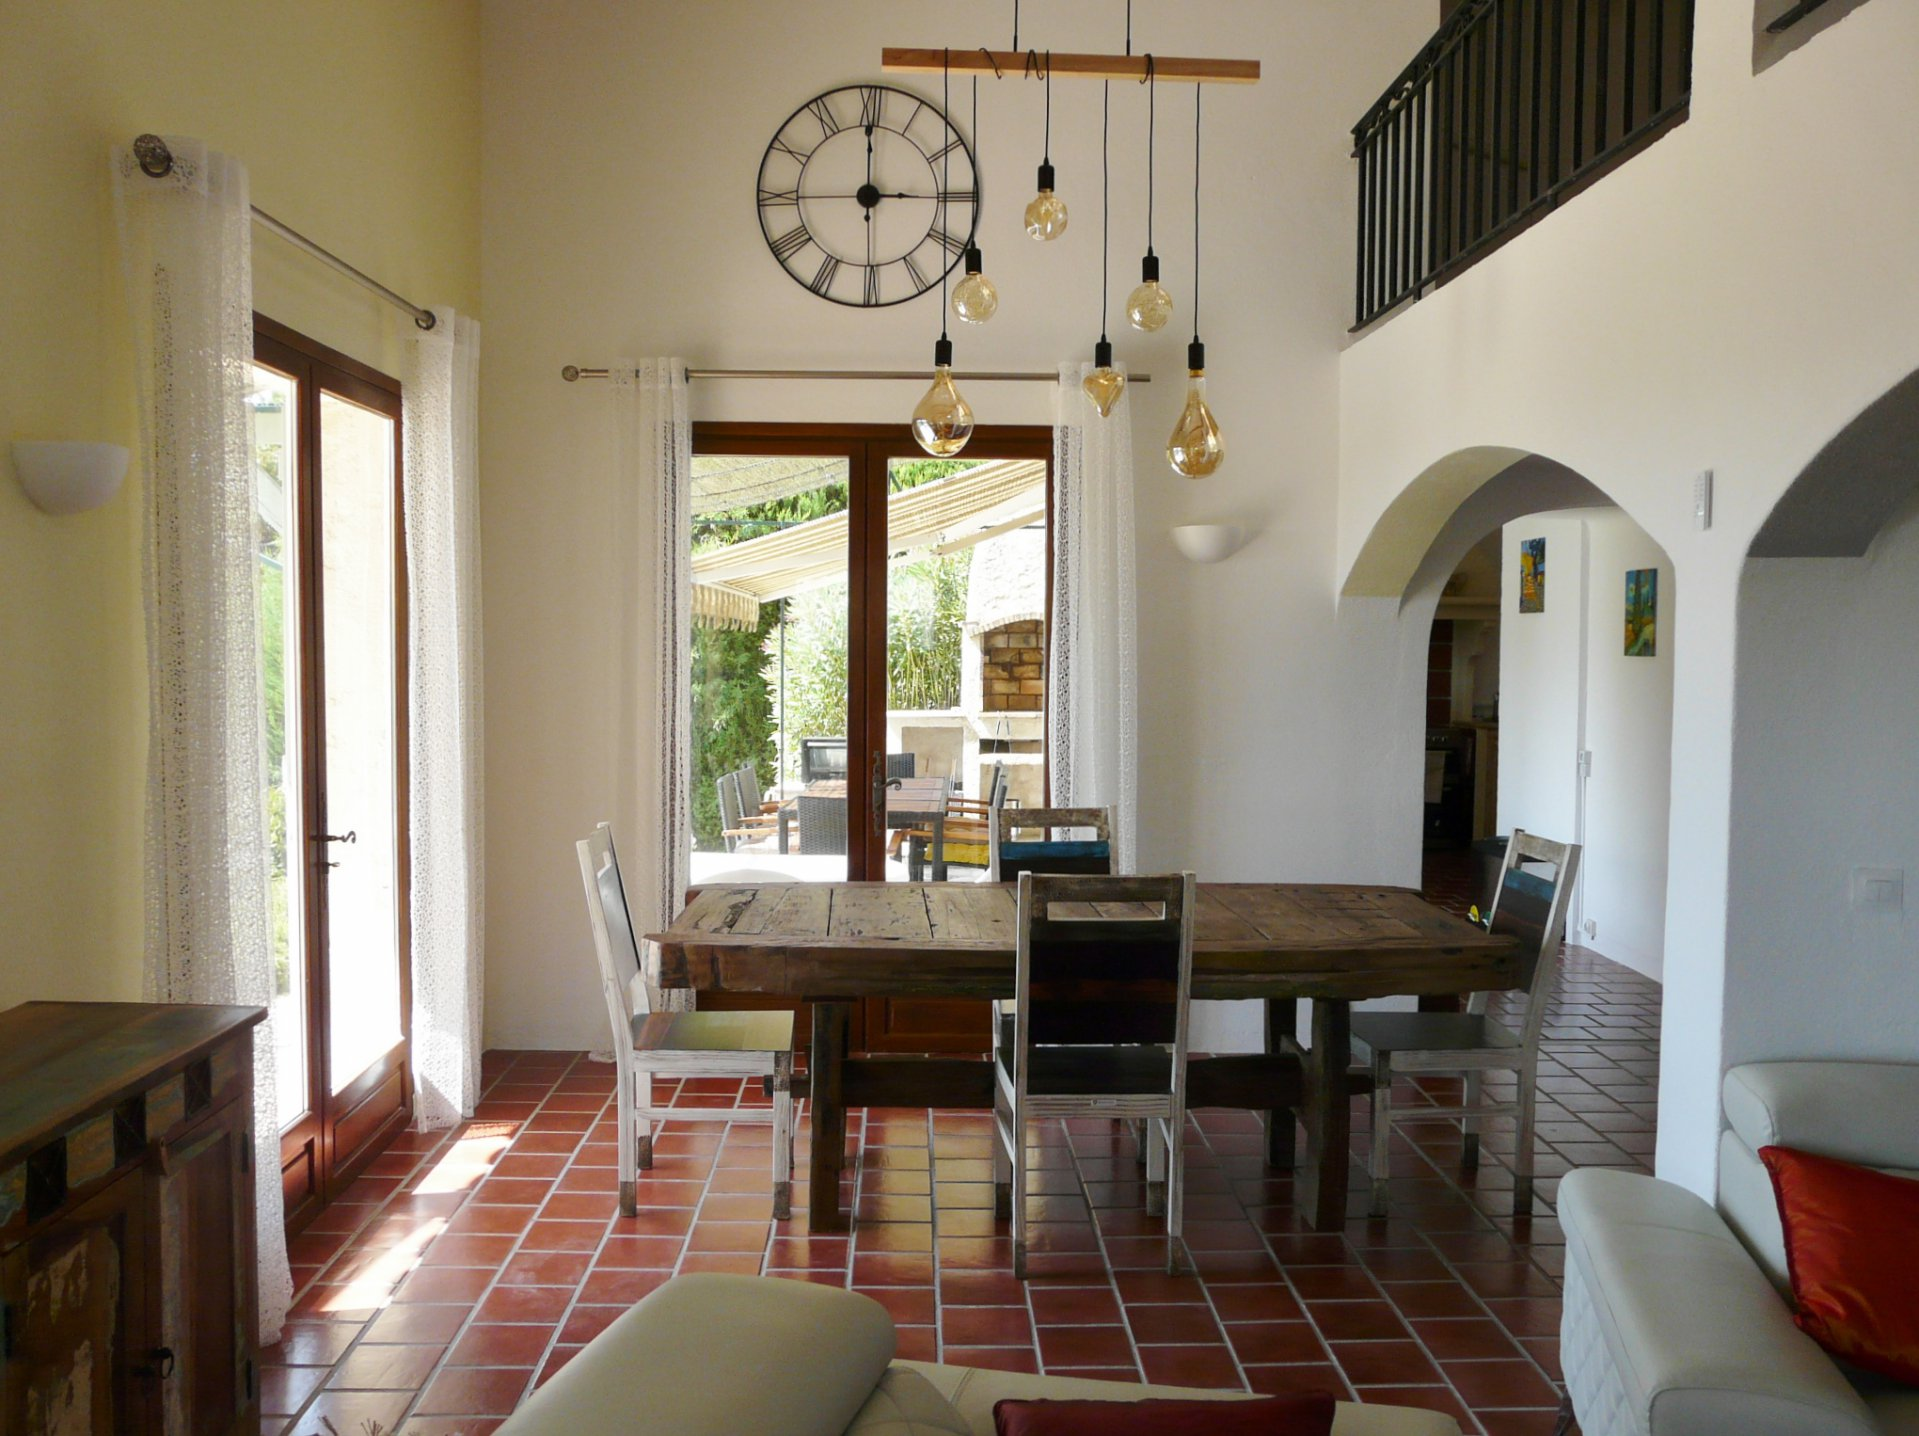 CHARMING VILLA IN A PRIVATE DOMAIN IN A DOMINANT POSITION AND PEACEFUL AREA